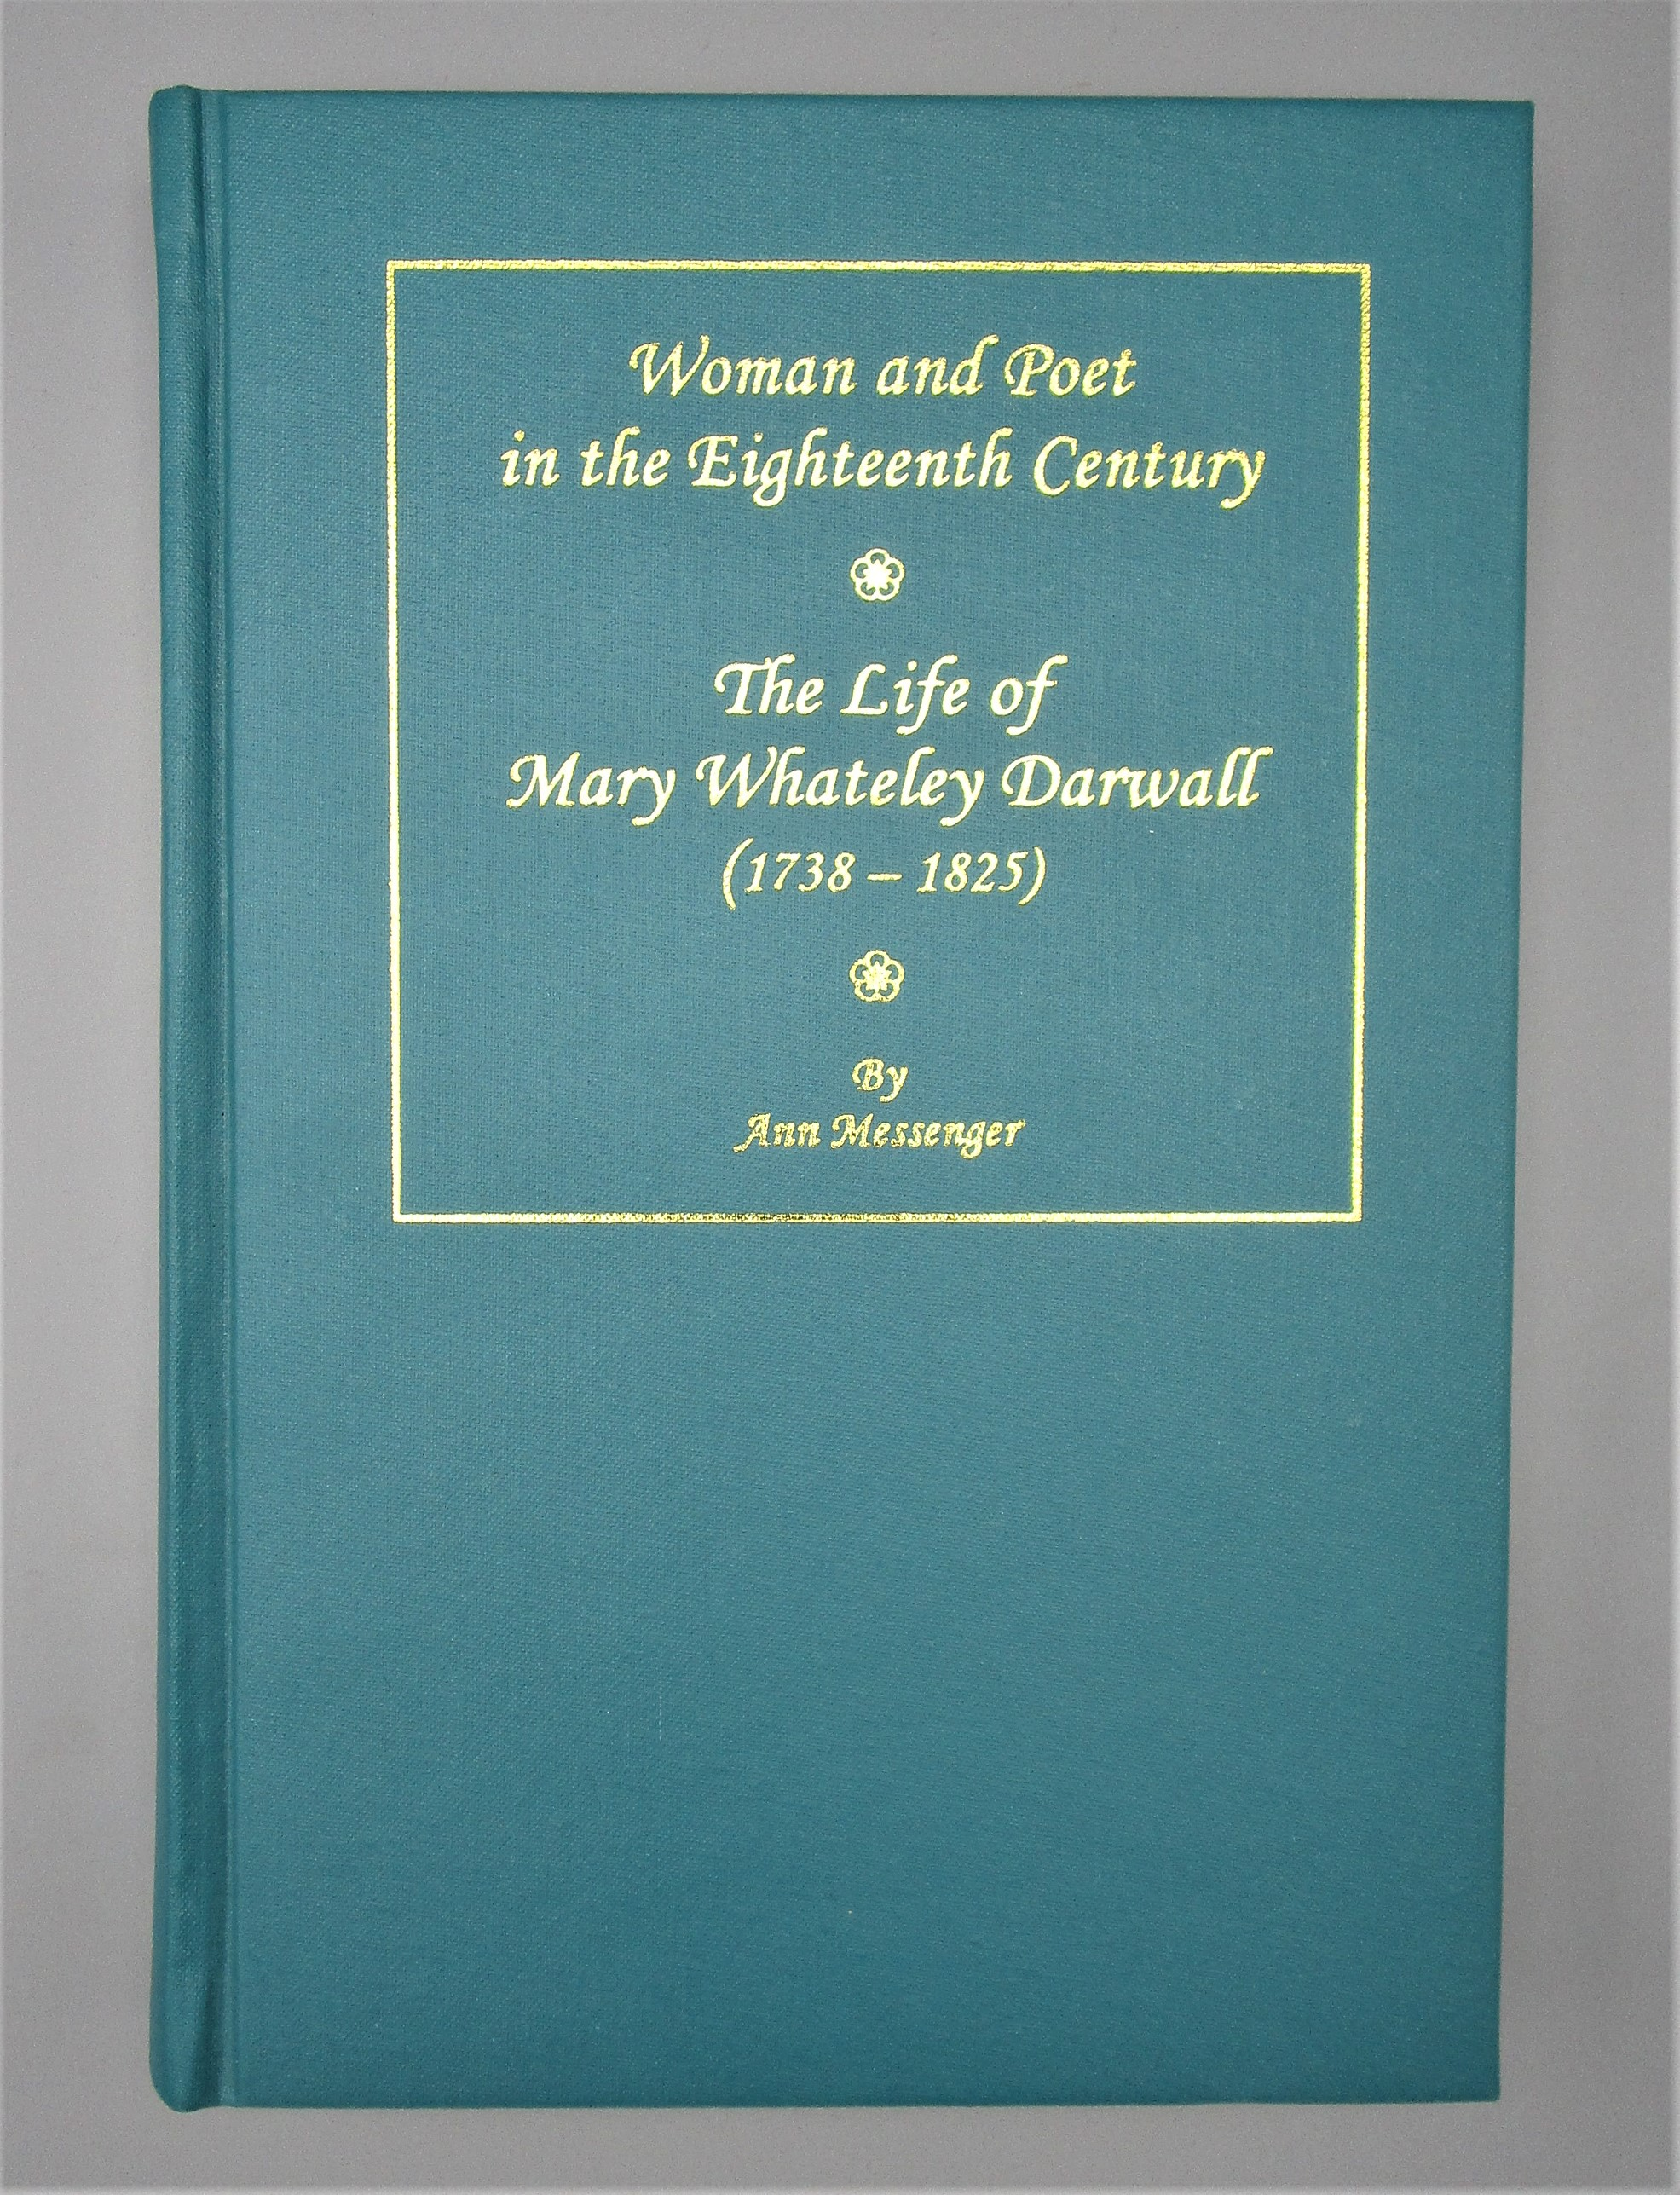 THE LIFE OF MARY WHATELEY DARWALL 1738-1825, by Ann Messenger - 1999